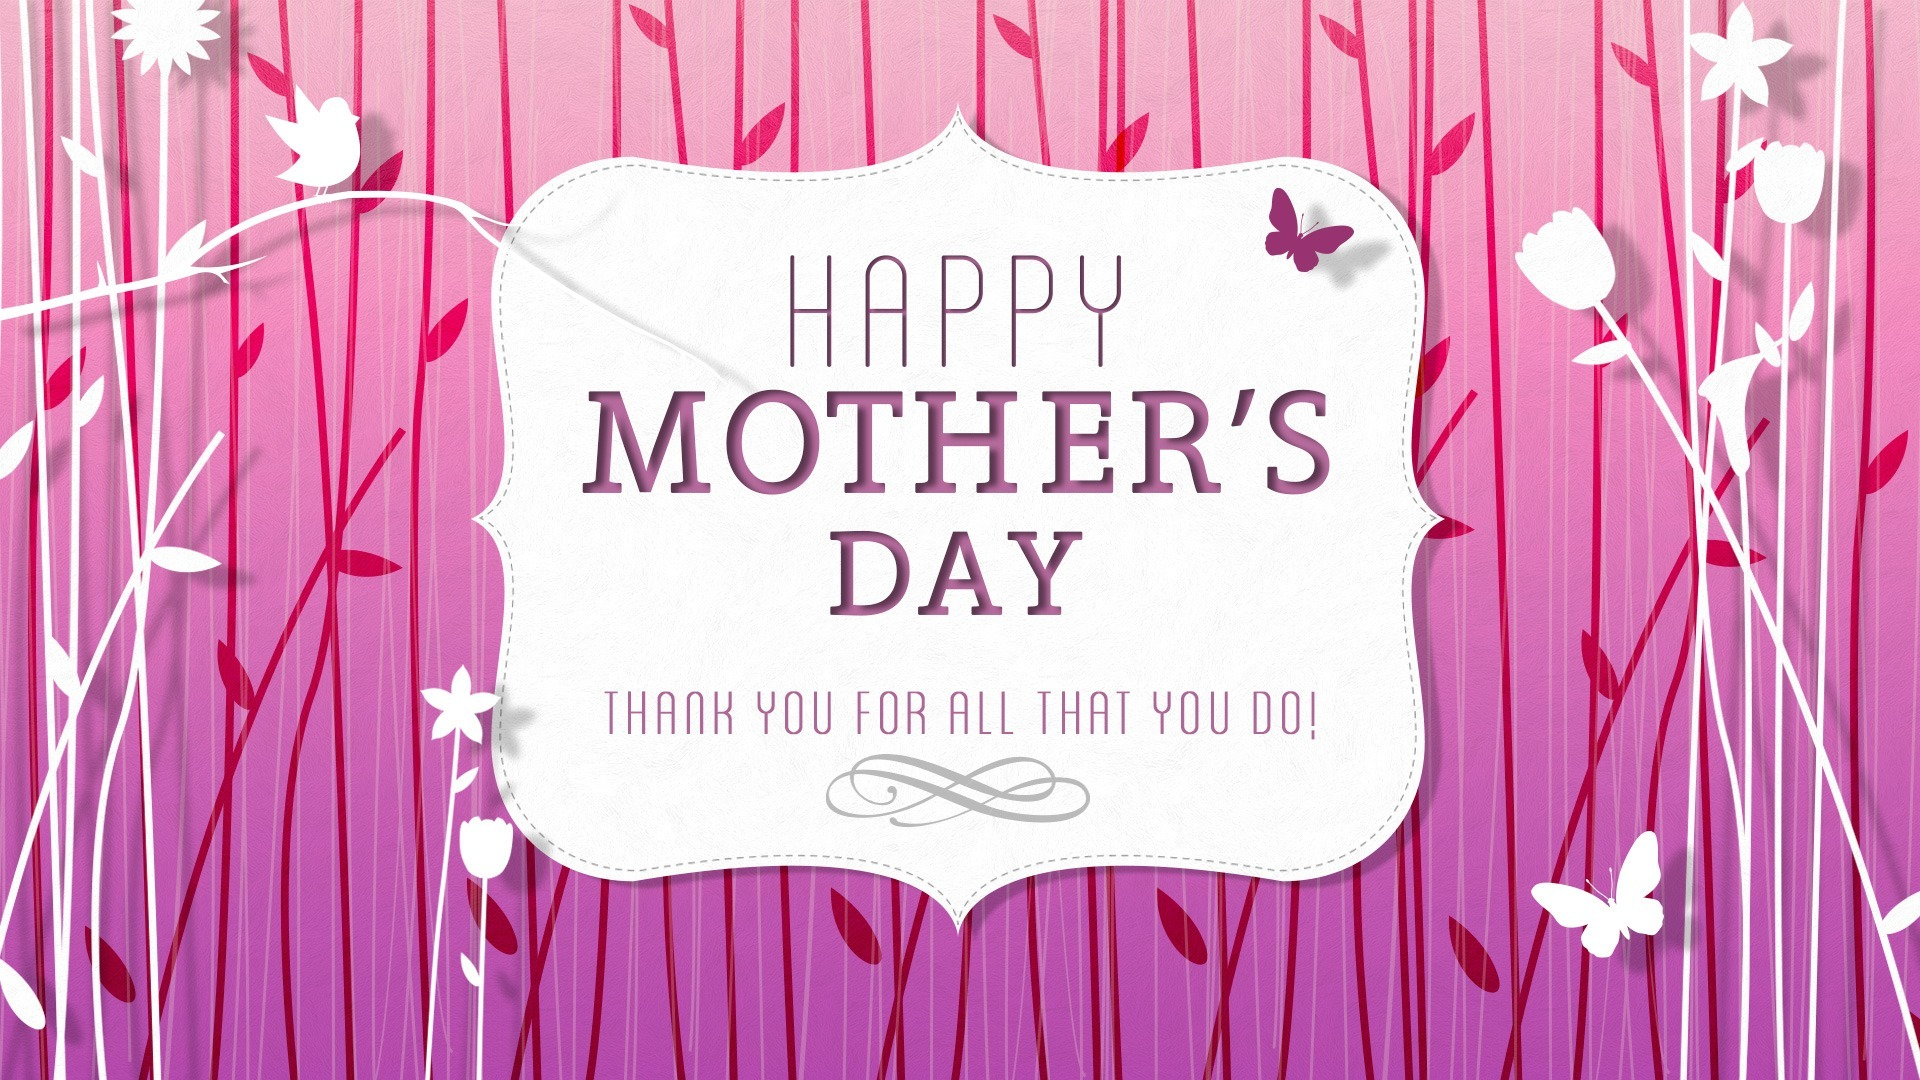 Lovely Happy Mother's Day Wishes for Mother - MOM 2018 Quotes